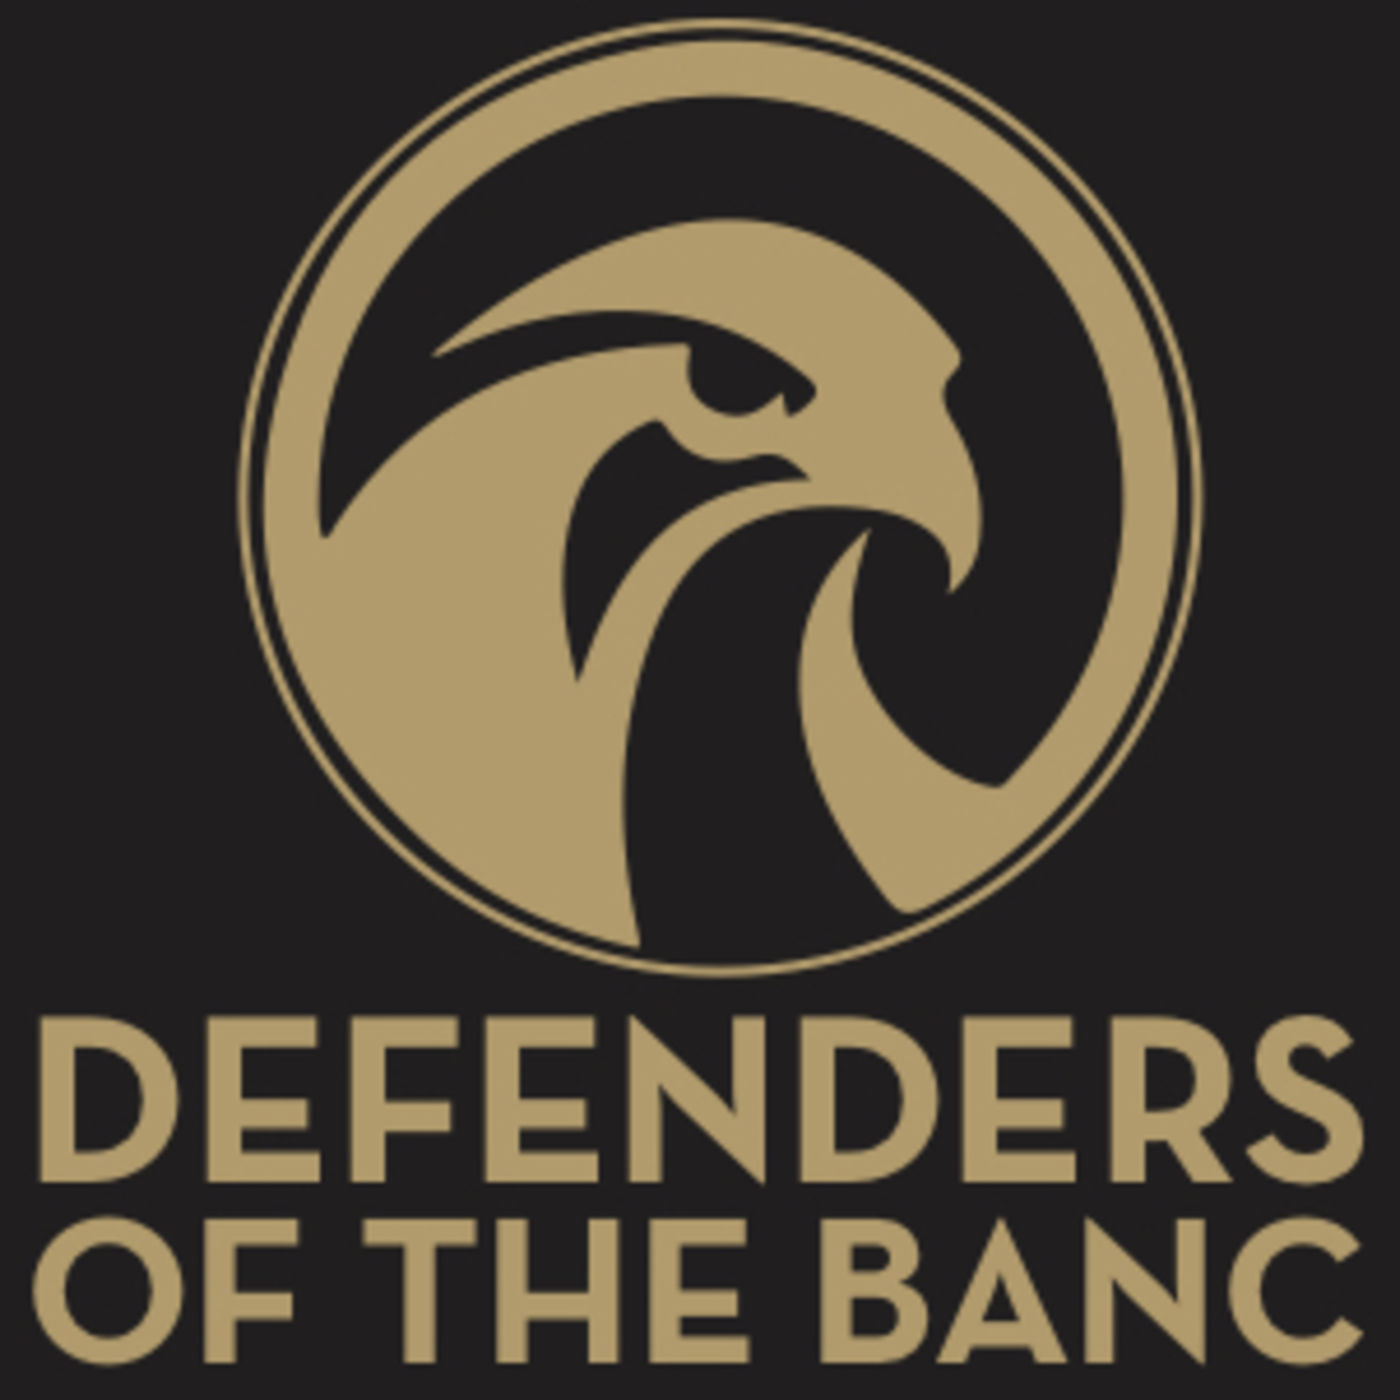 ef3f0e60f2d Defenders of the Banc - An LAFC Podcast | Listen Free on Castbox.